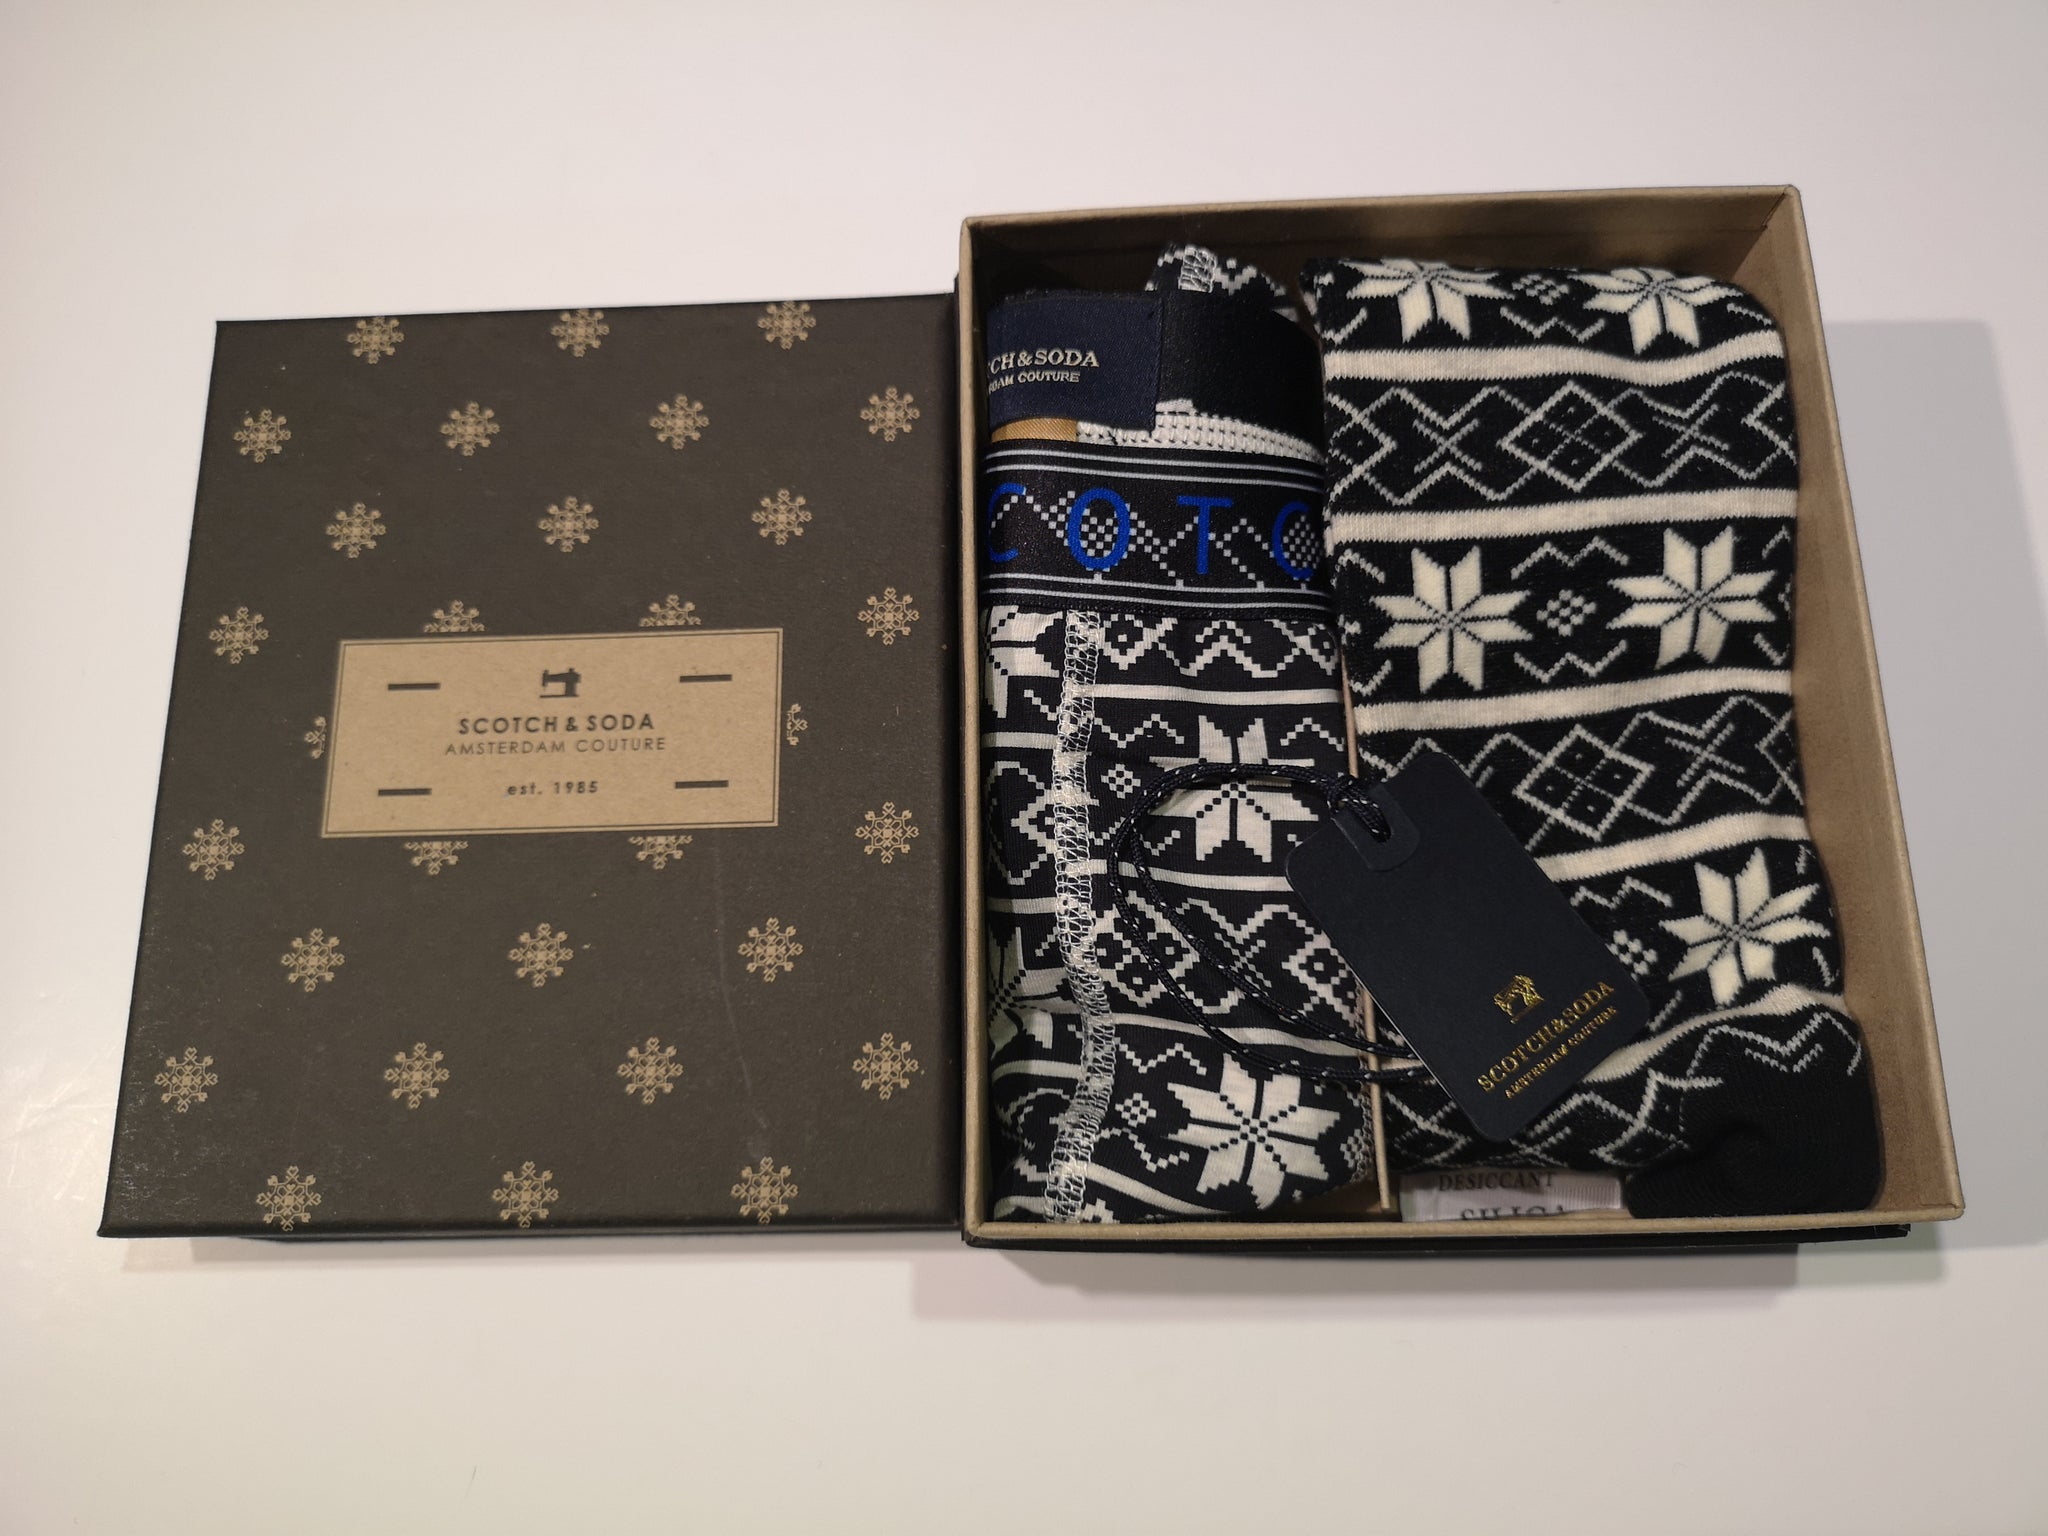 Scotch and Soda Trunk And Socks Box Set